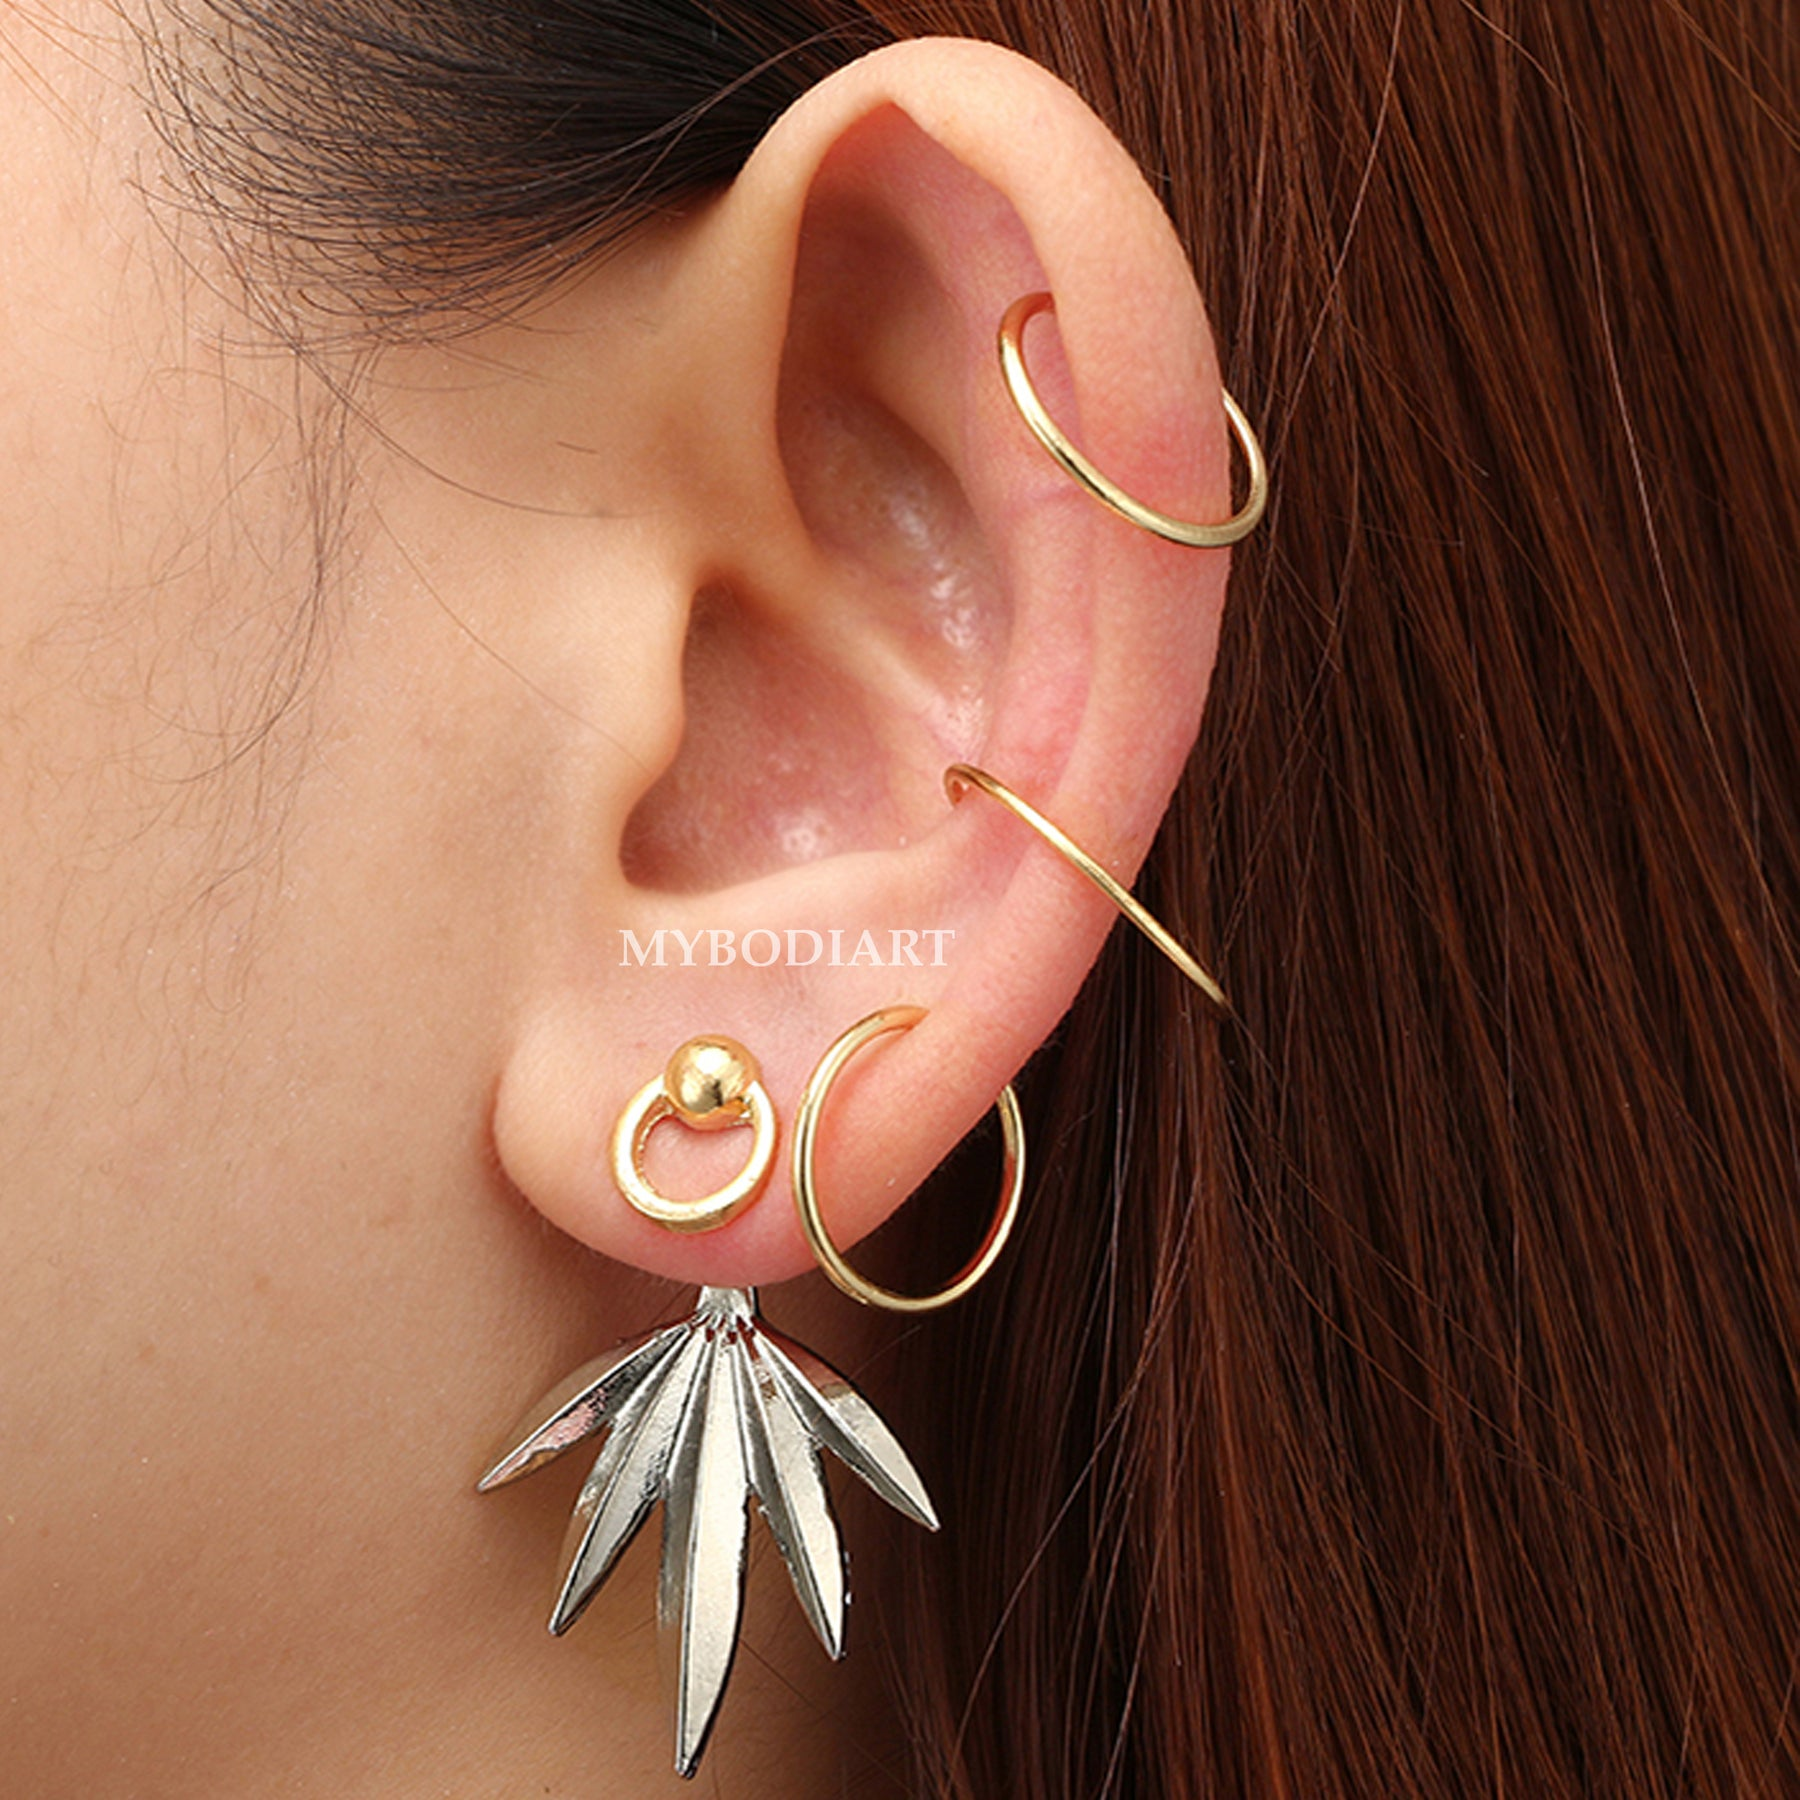 Bohemian golden chain earring with cauri shell /& grey blue pompon for helix piercing 1 only